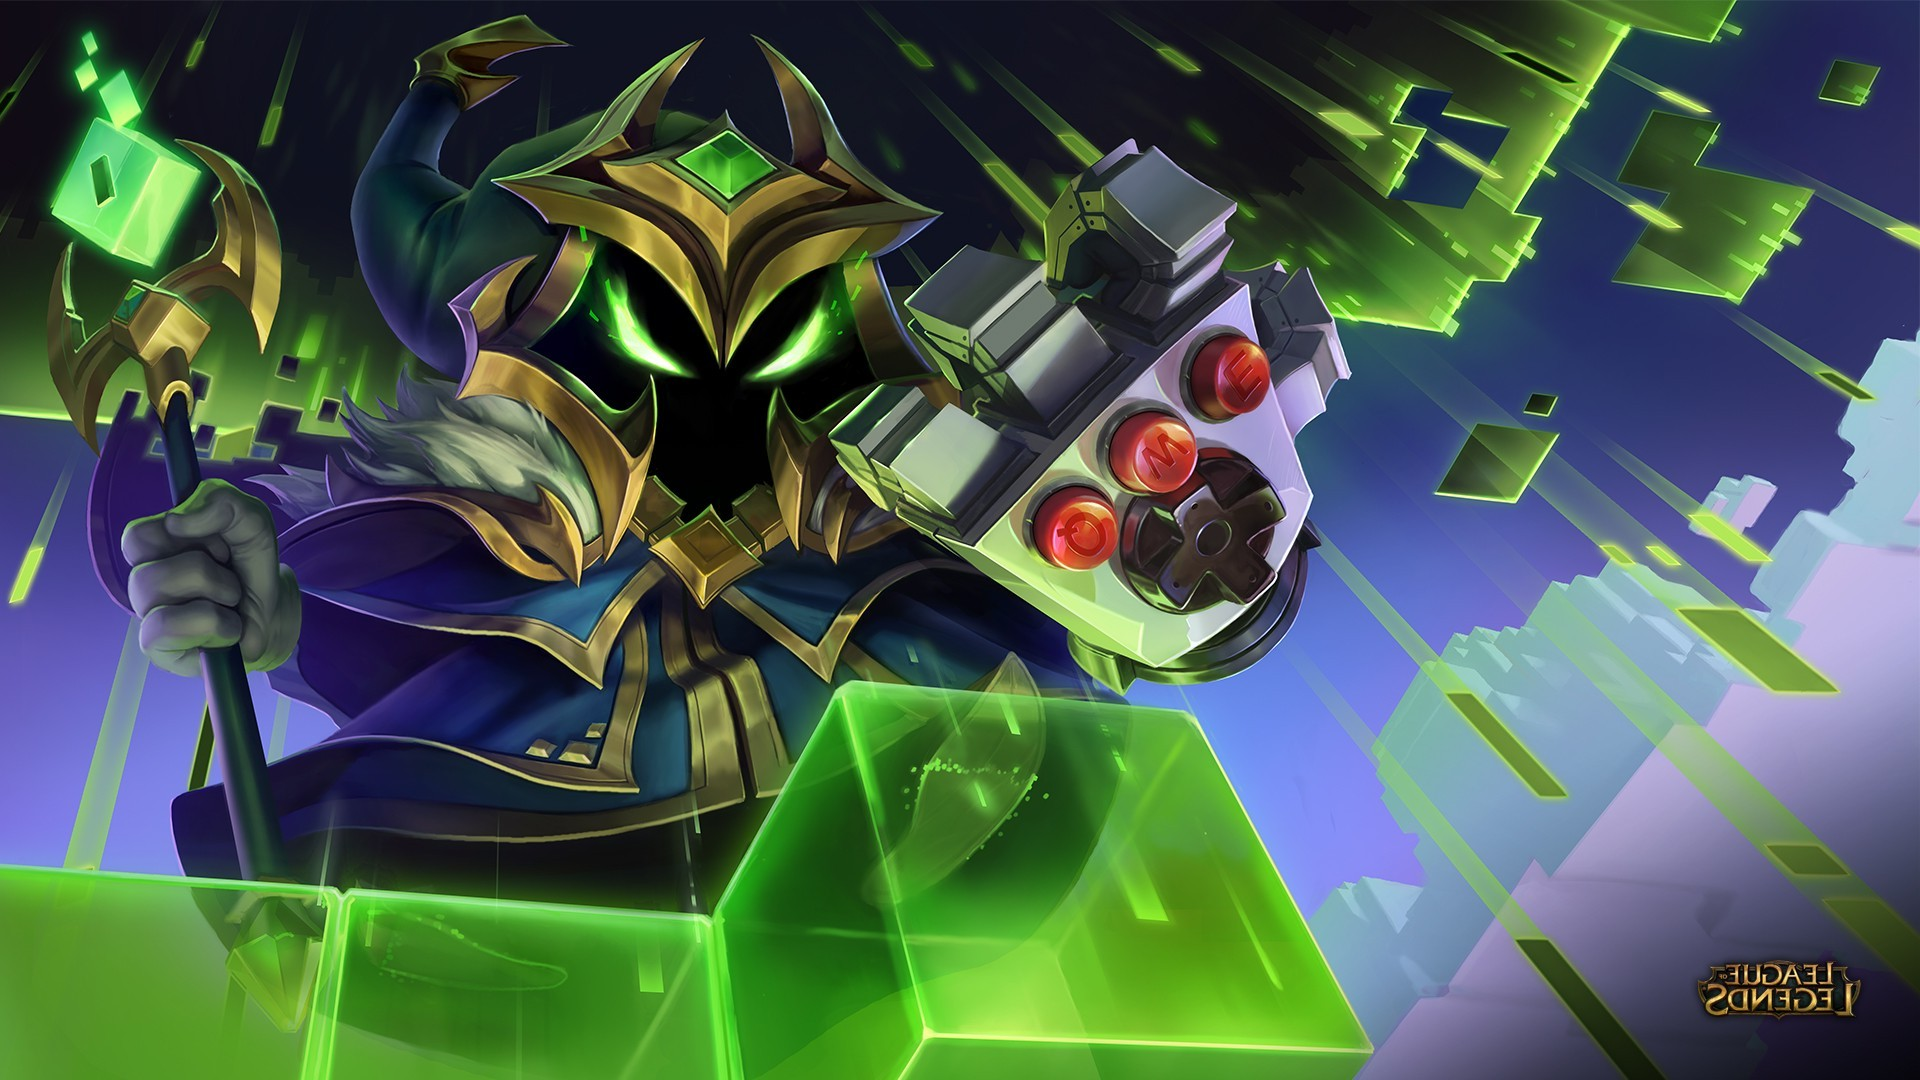 Free Download Download Hd Wallpapers Of 267591 League Of Legends